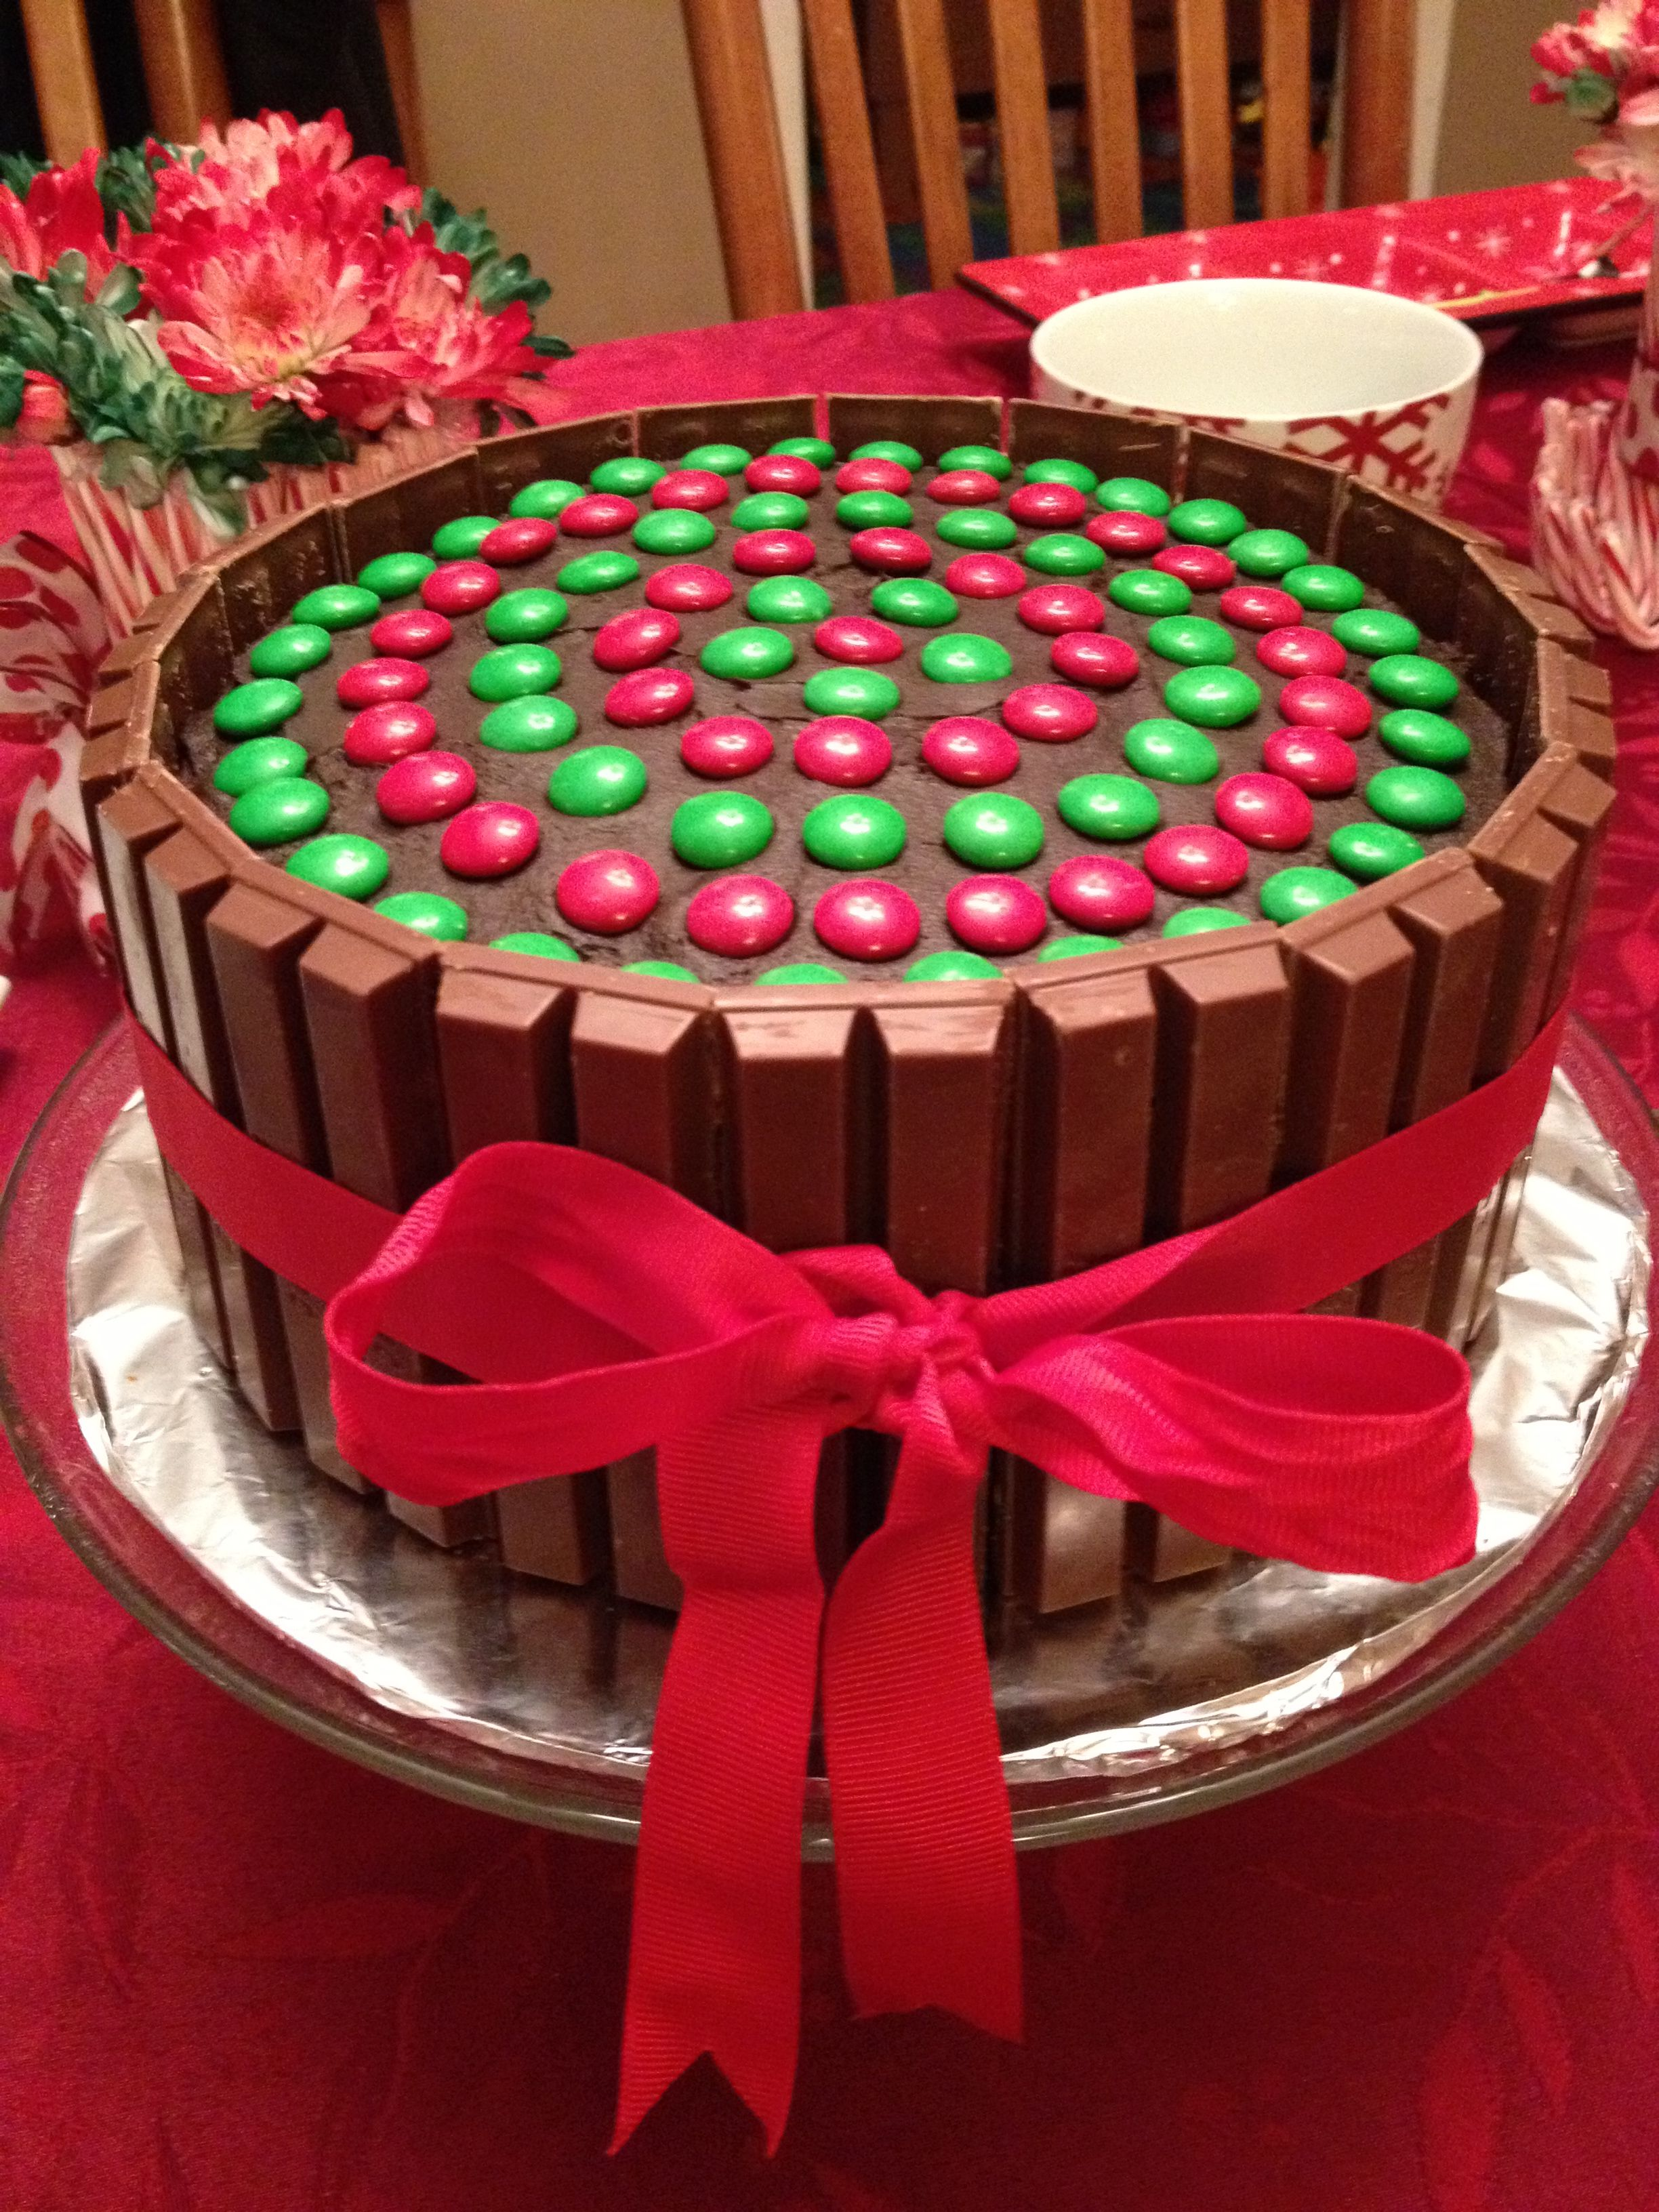 Cool Kit Kat Cake But W Recipients Favorite Colors With Images